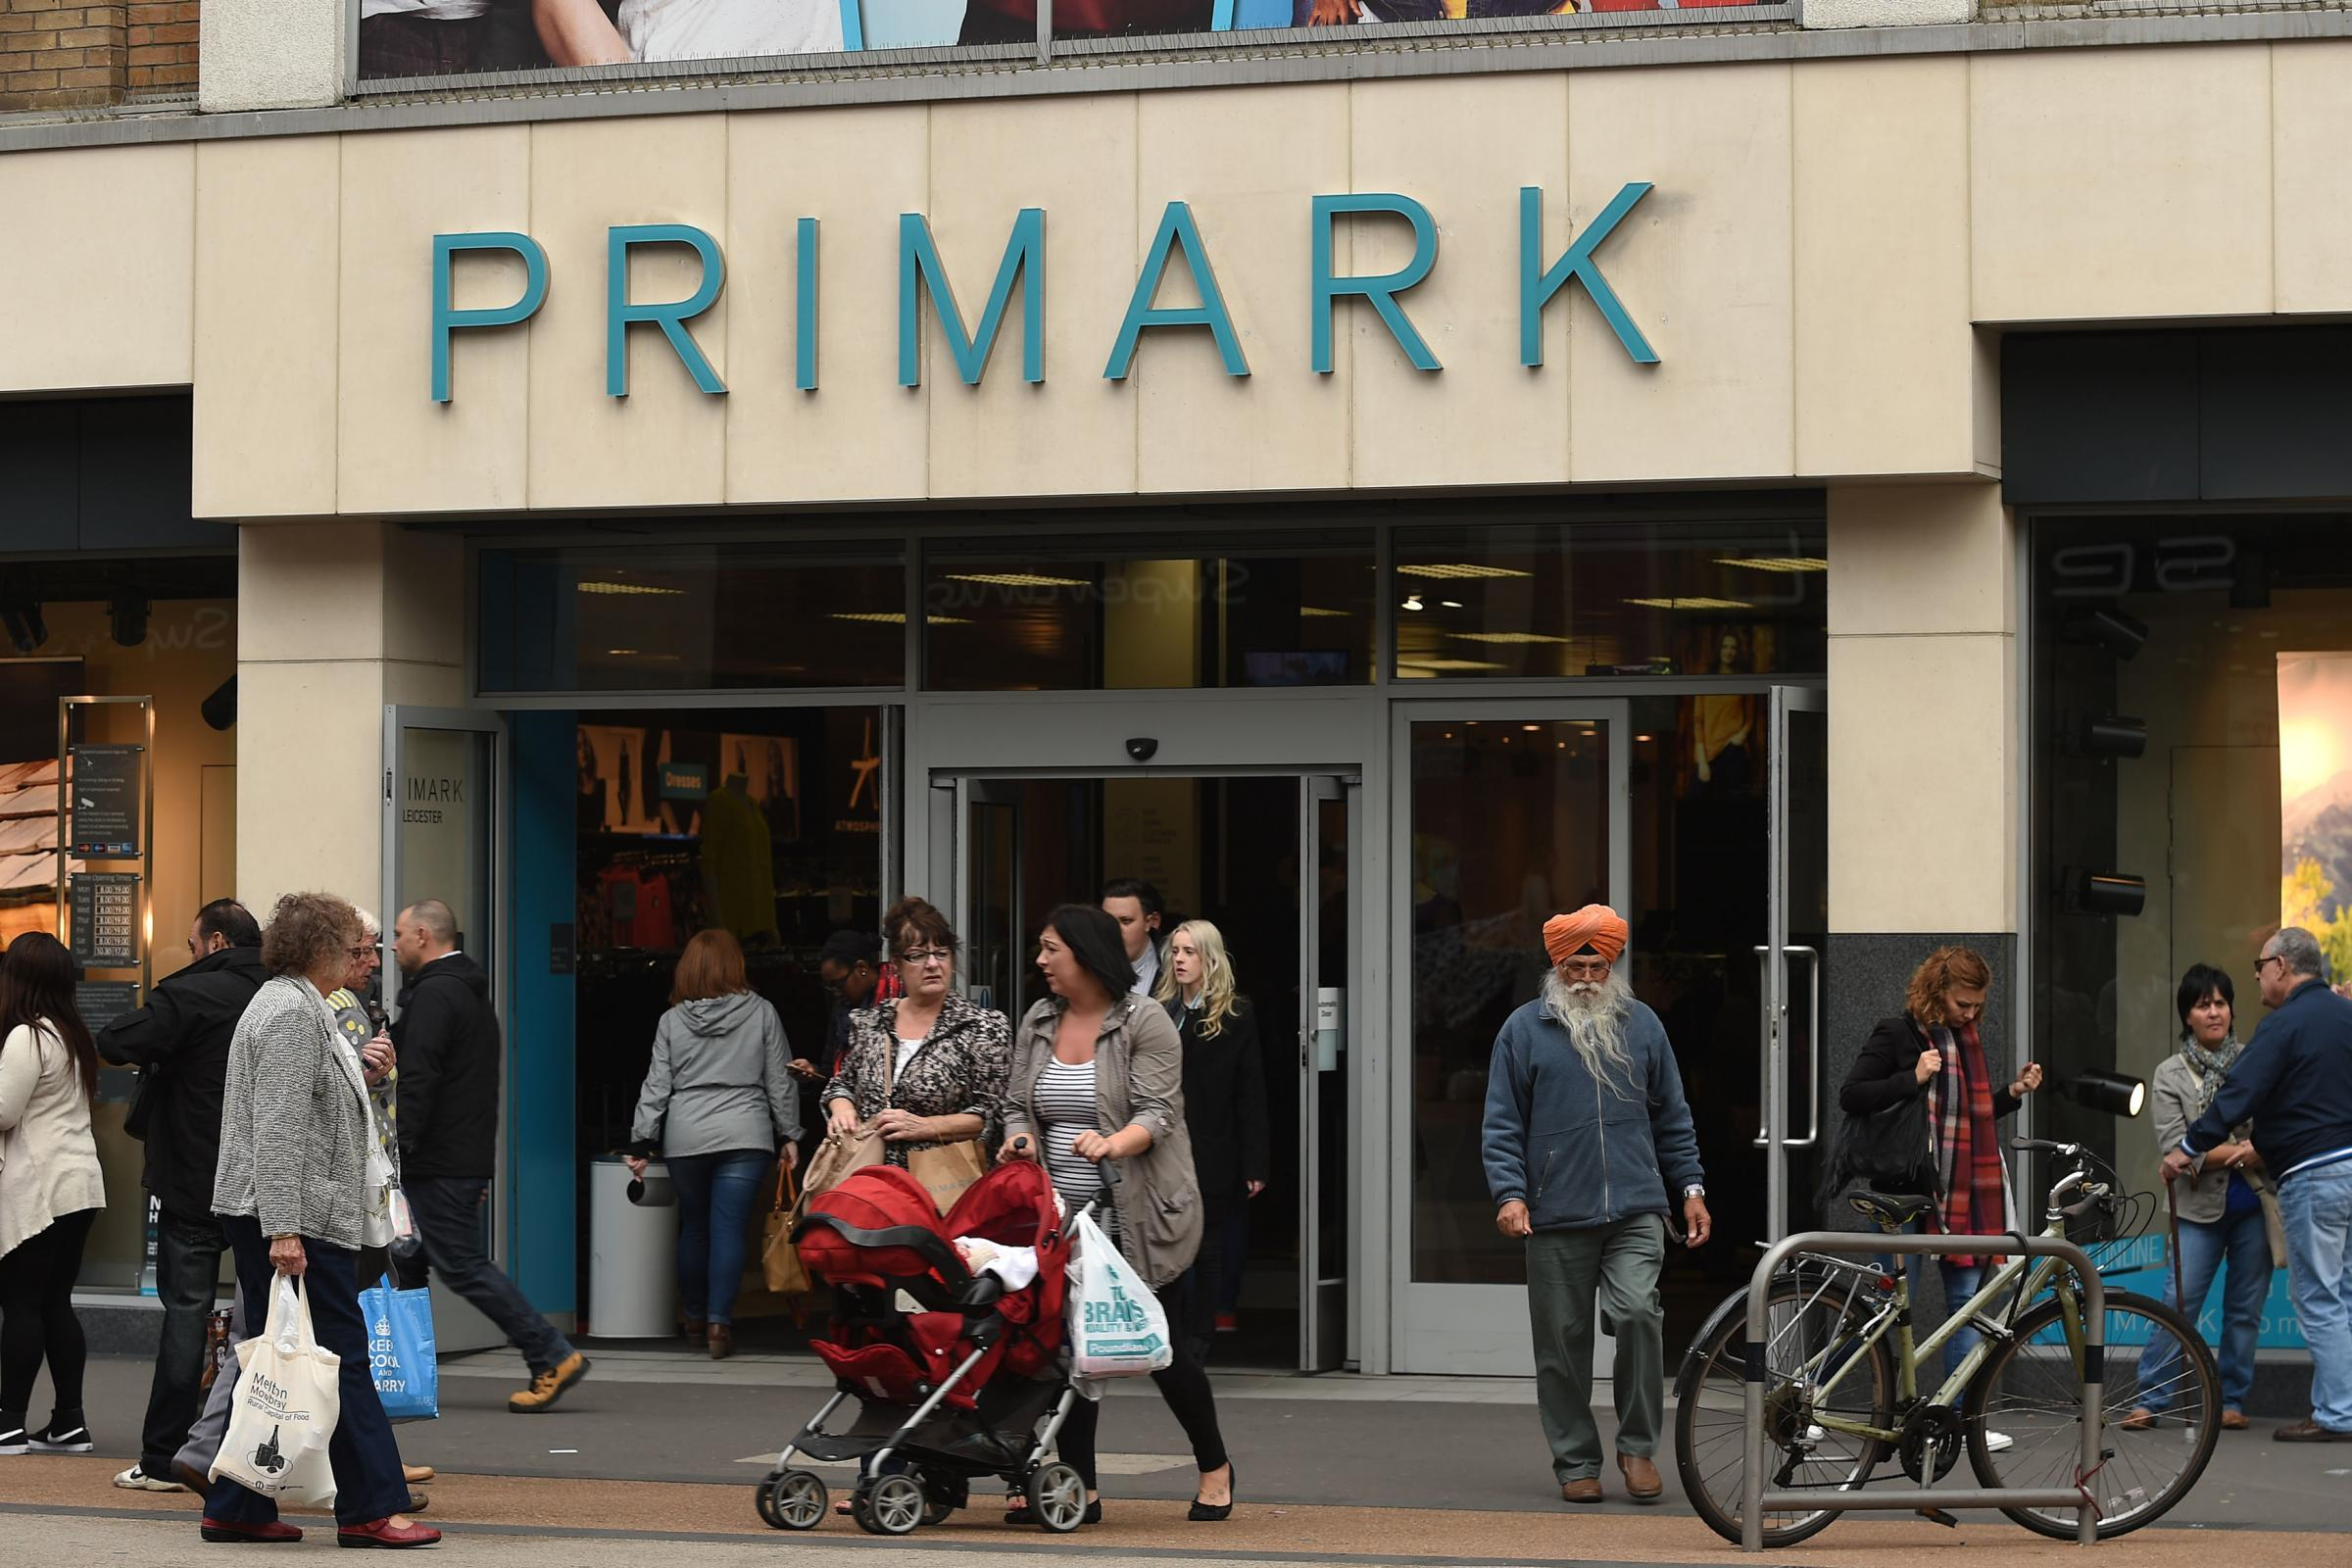 Primark said trading has been challenging